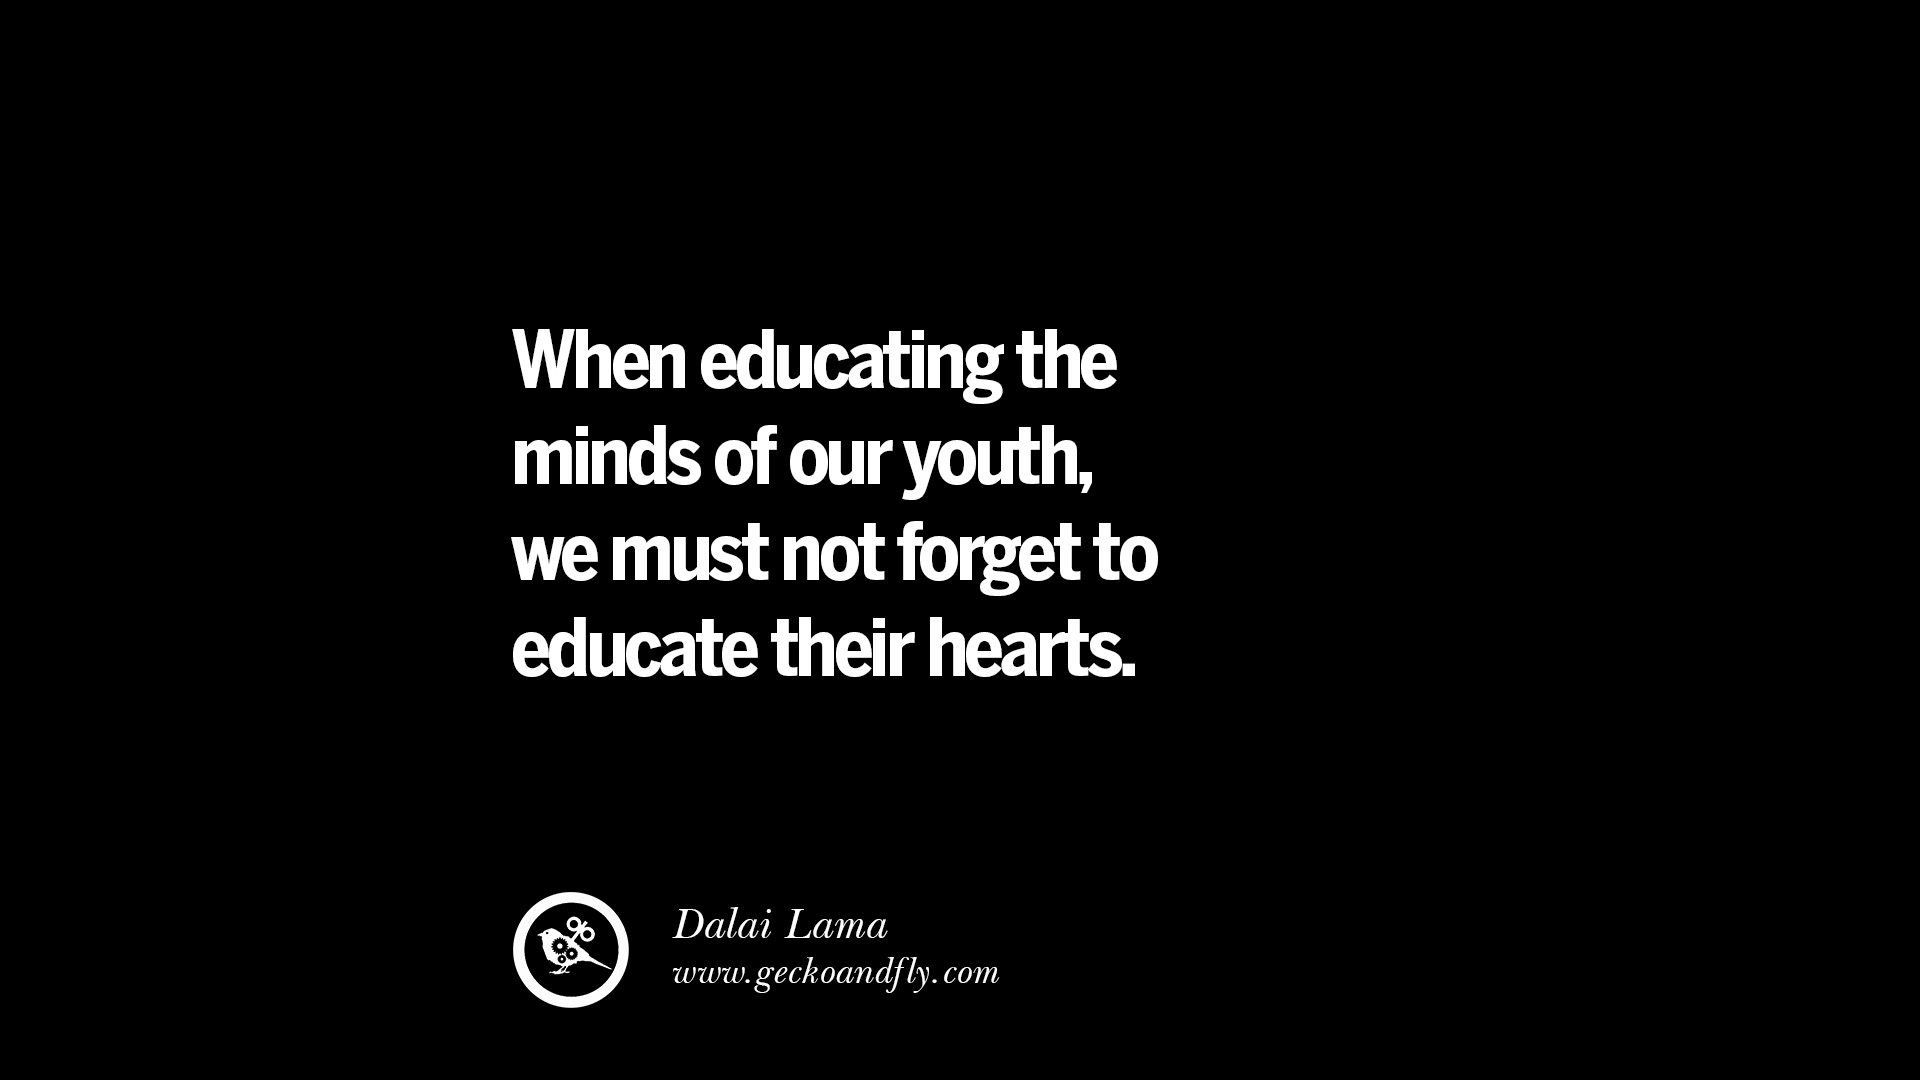 famous quotes on education teaching schooling and knowledge